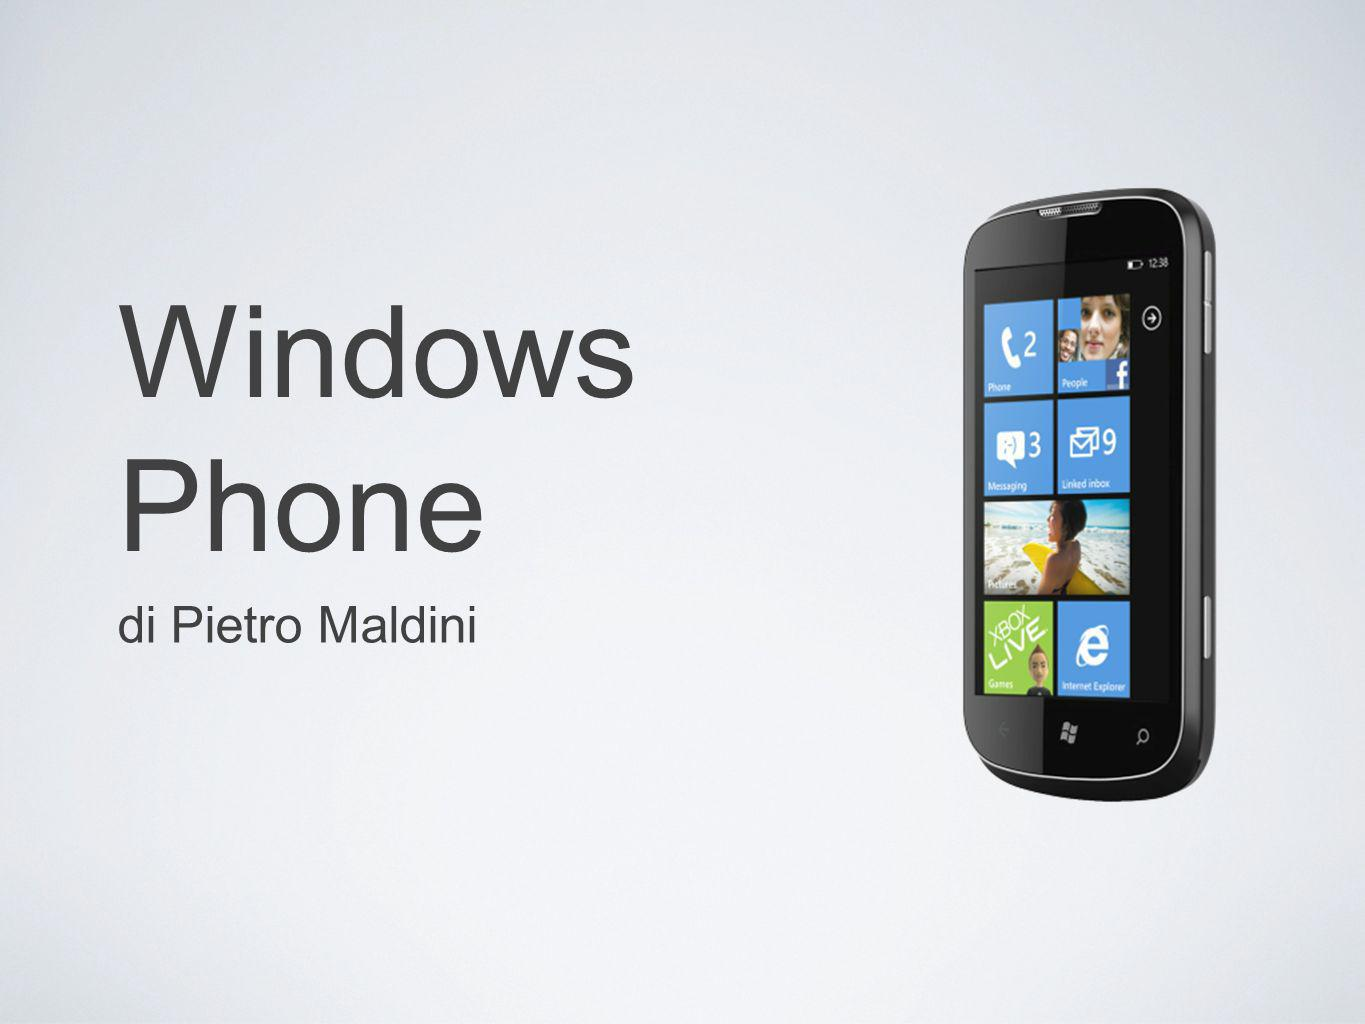 Windows Phone di Pietro Maldini